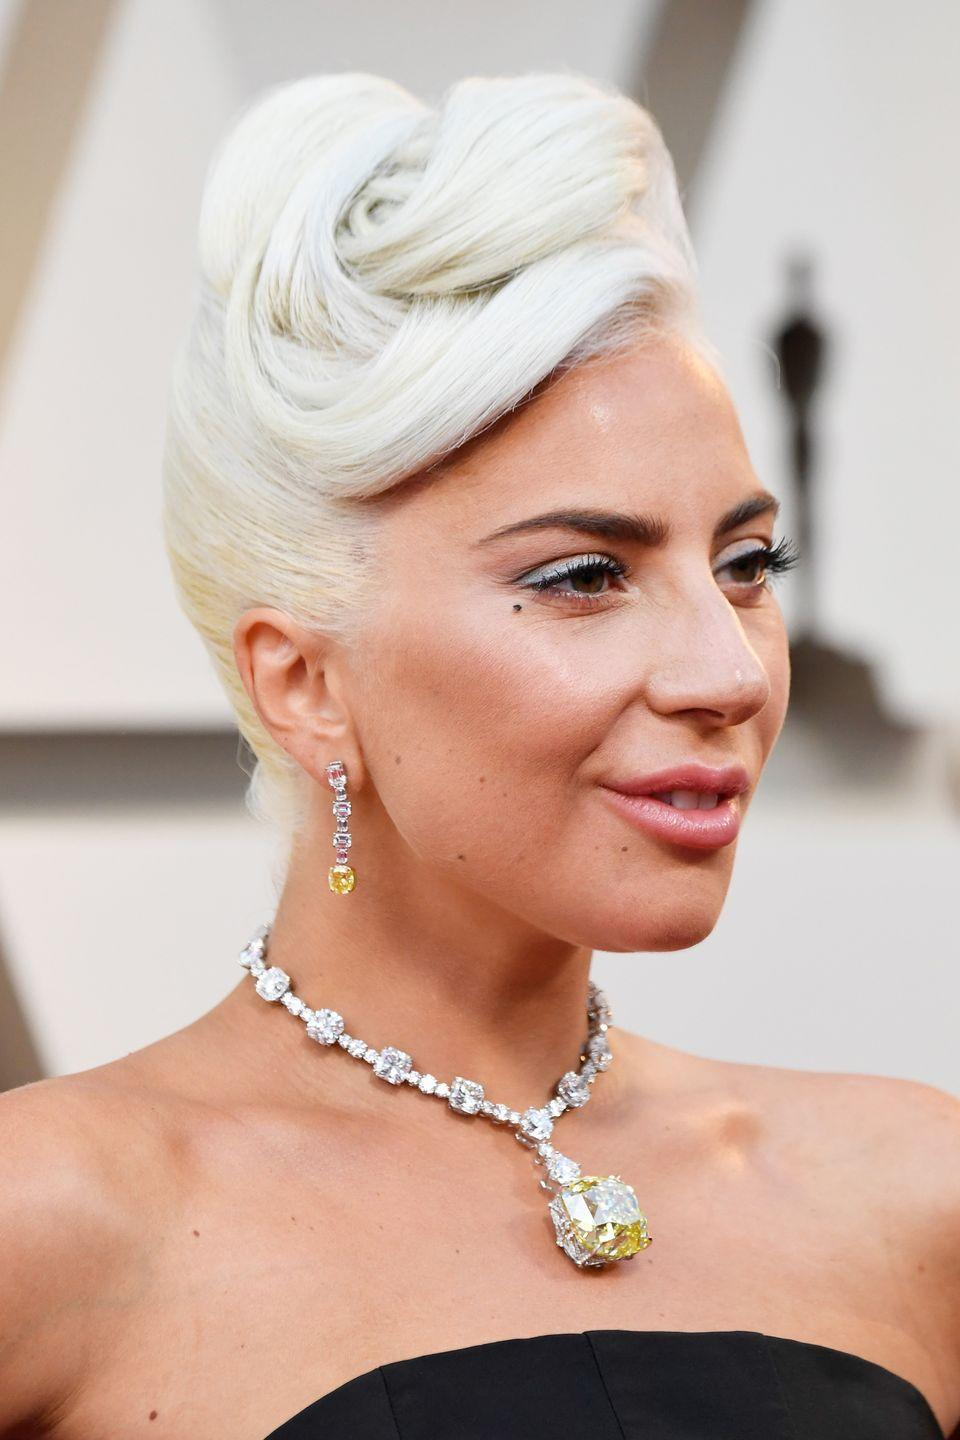 <p>When she's not dabbling with pastel blue or bright pink hair, Lady Gaga's bleached blonde hair is her go-to.</p>